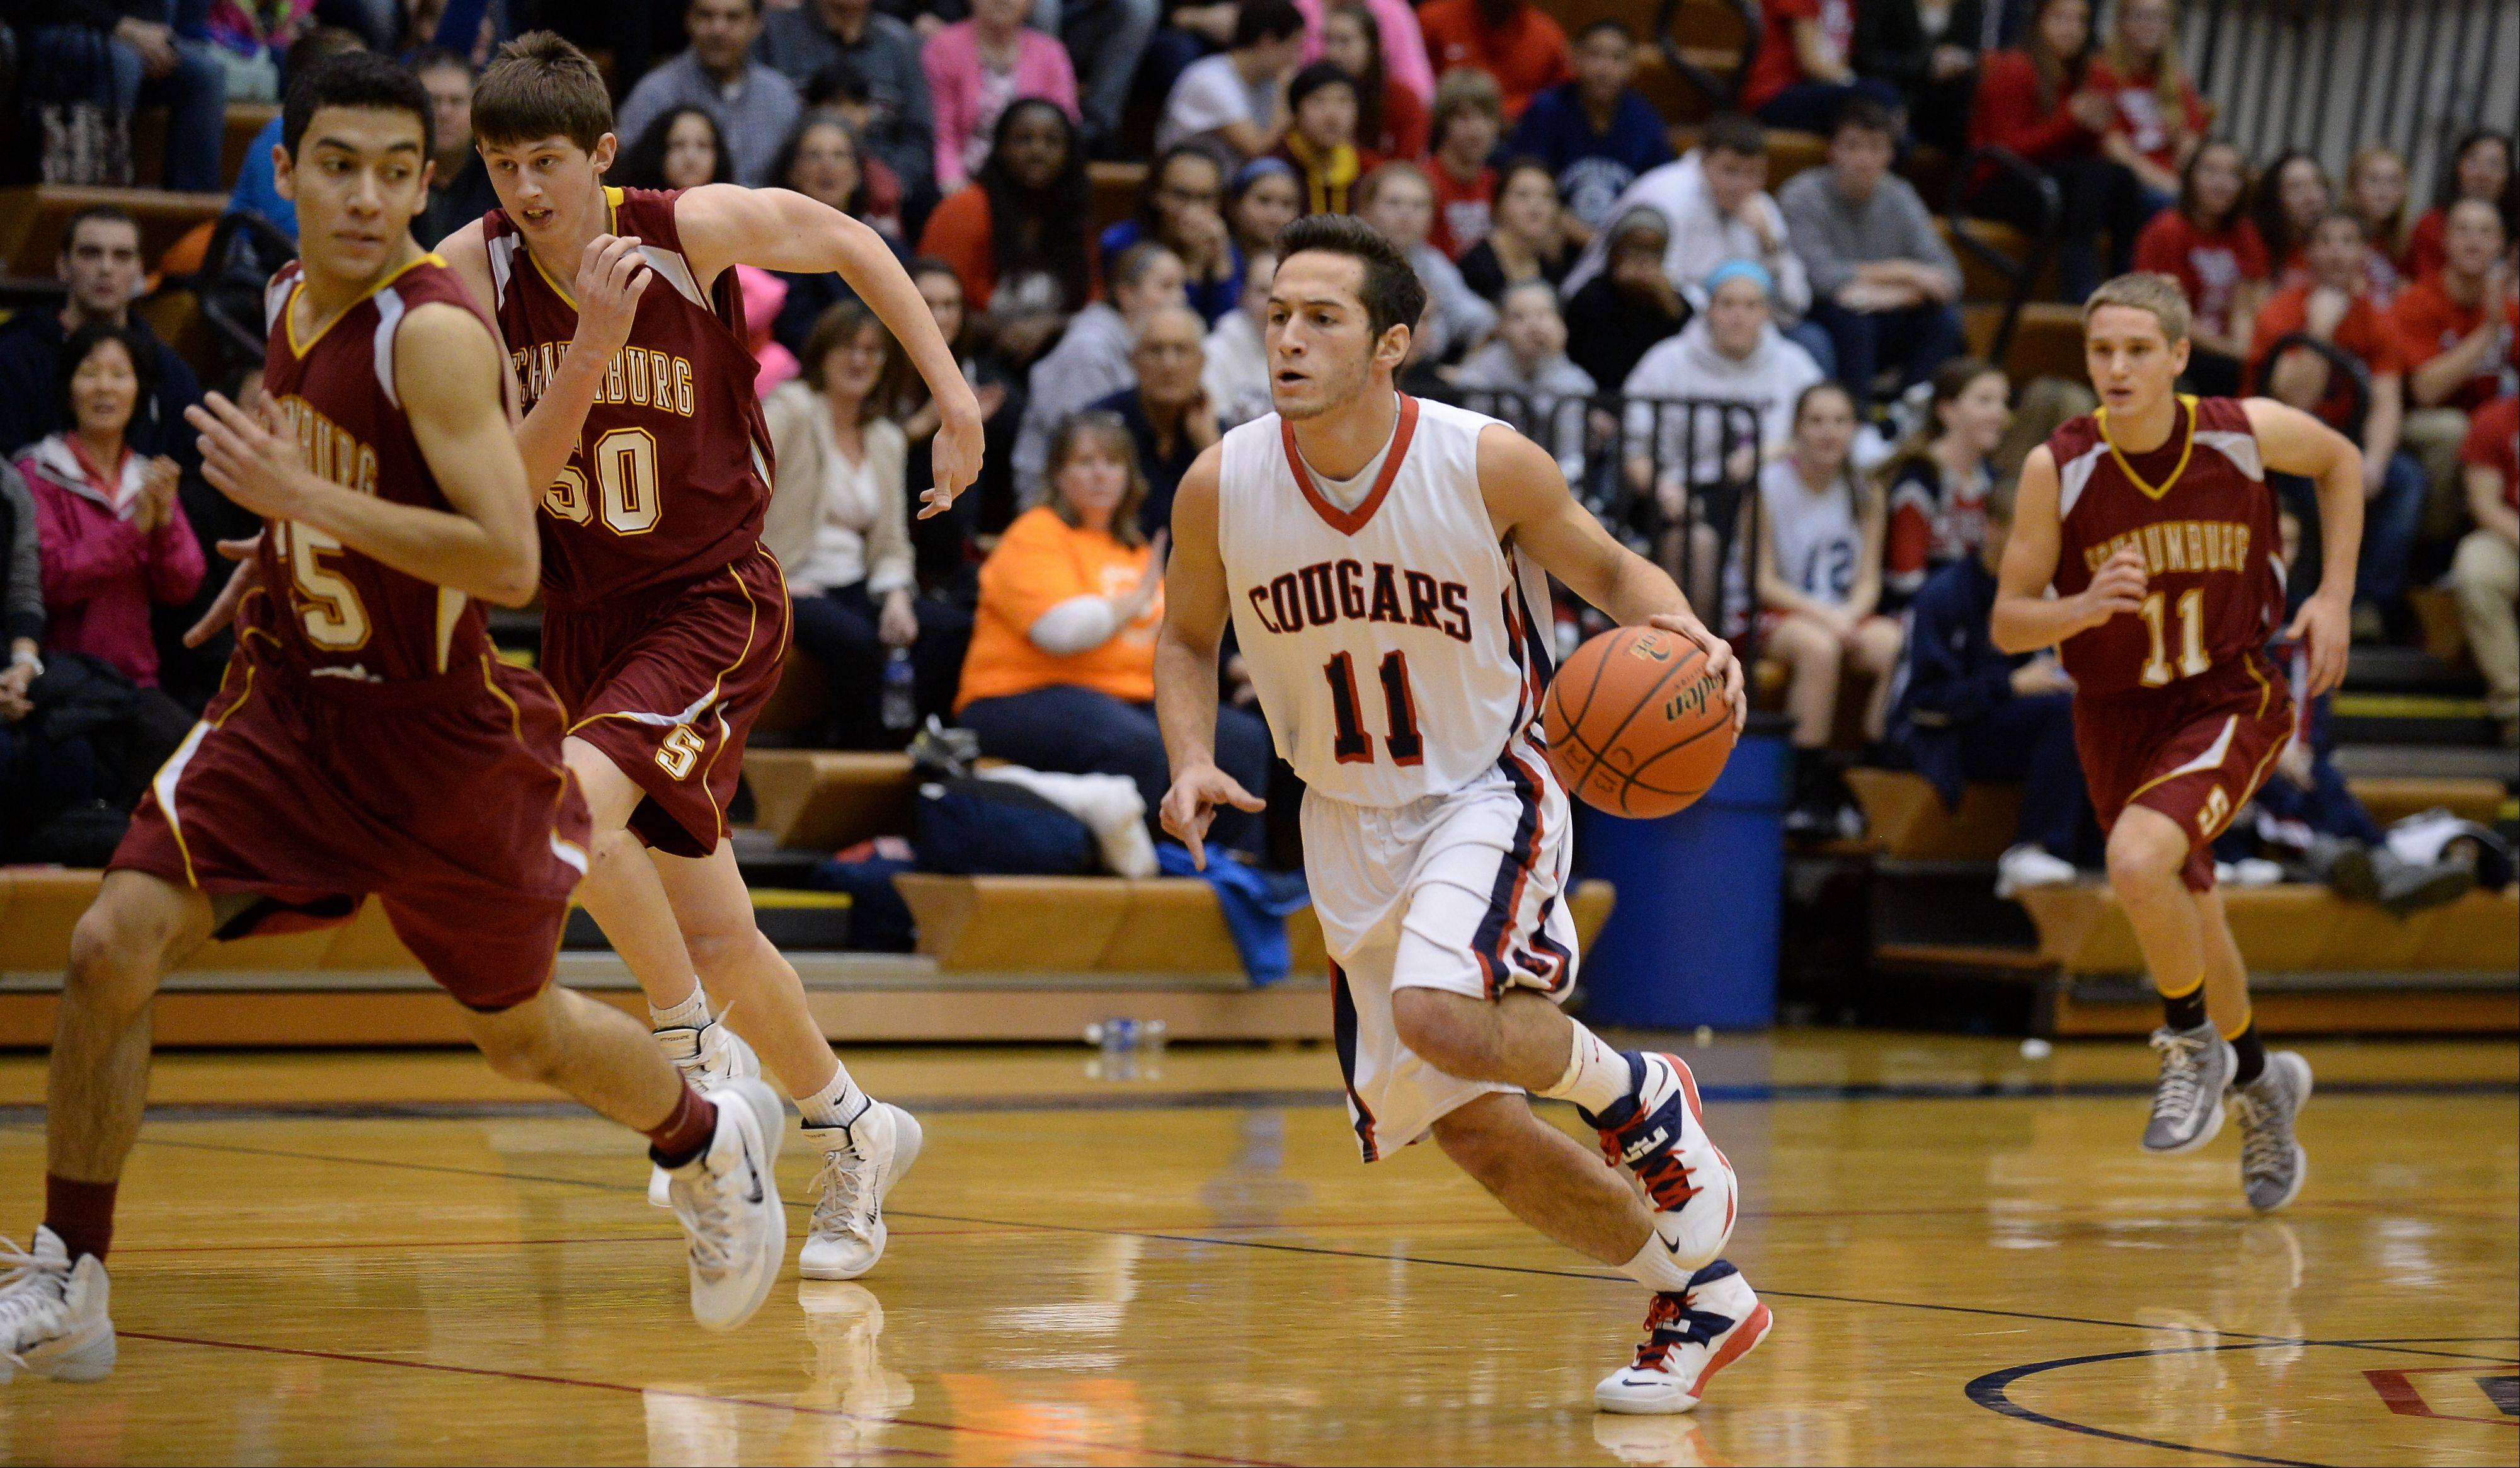 Photos from the Schaumburg vs. Conant boys basketball game on Friday, January 10th, in Hoffman Estates.